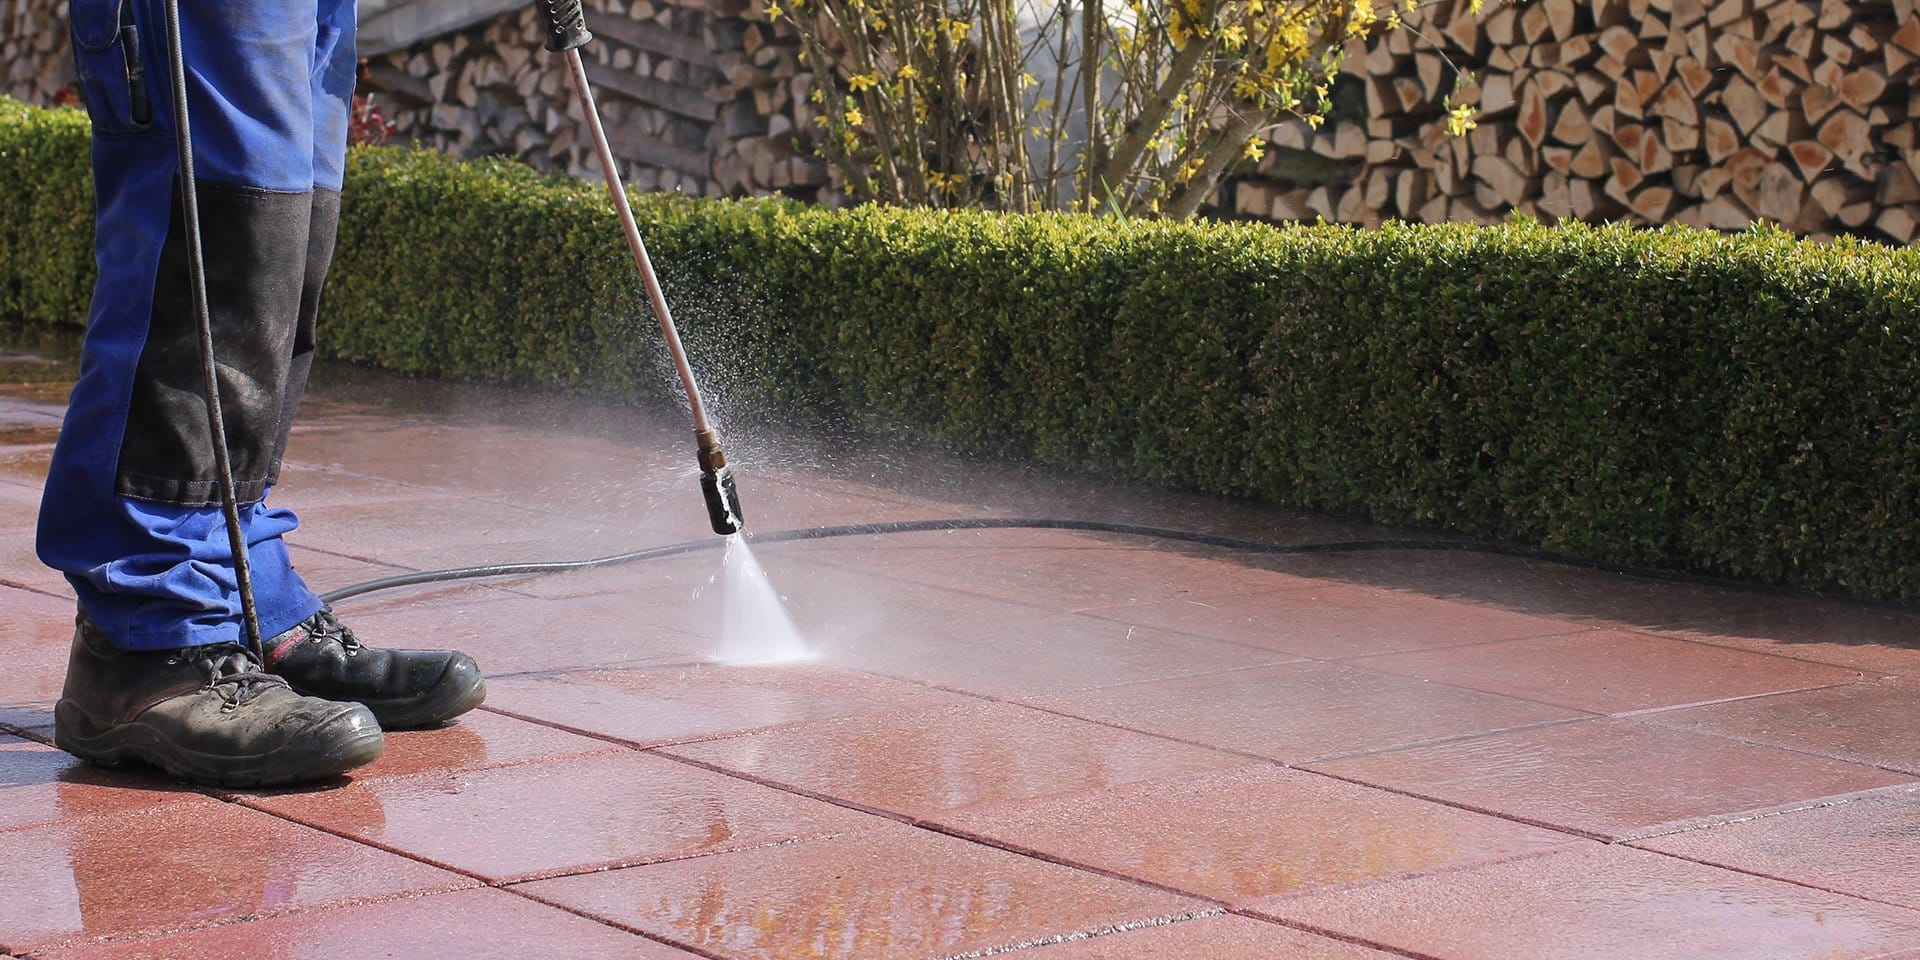 Superclean Pressure Washers Supplier of power washers in Uk and ireland